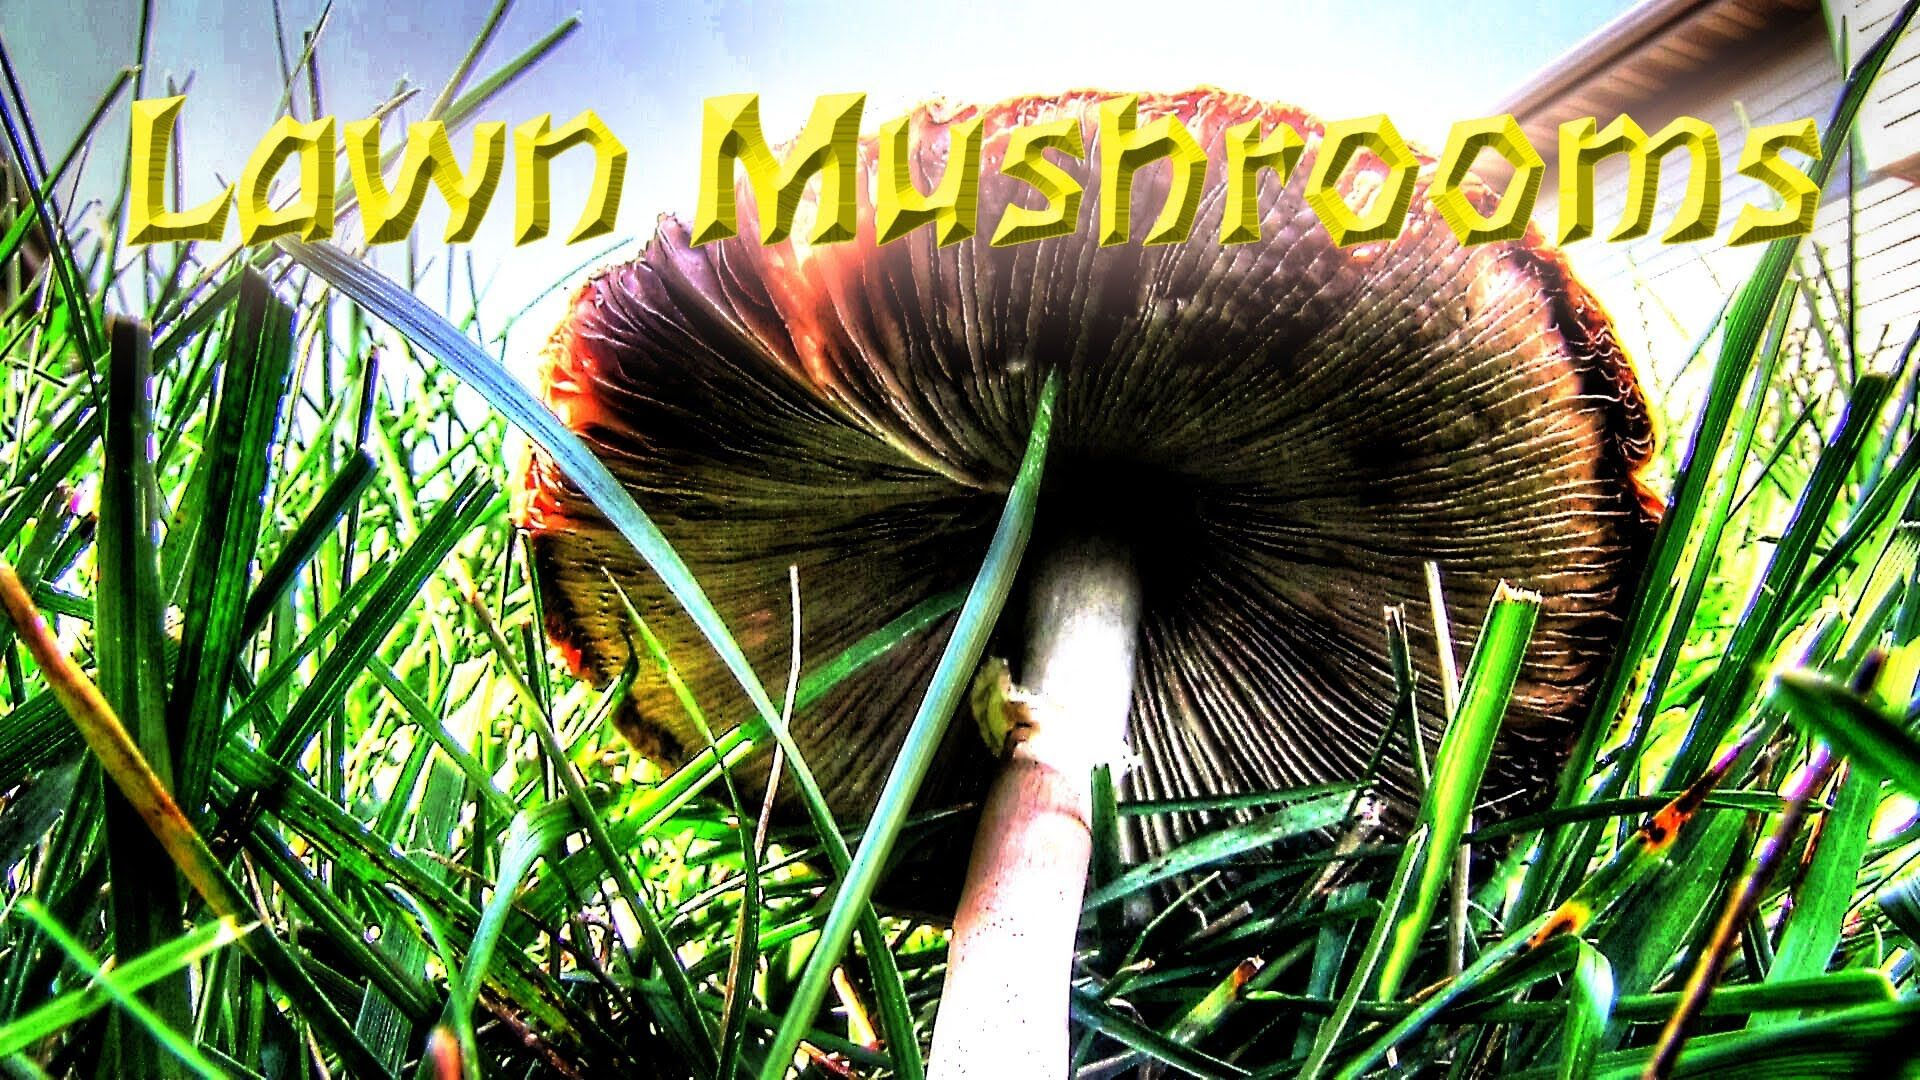 I have mushrooms in my lawn today i show you why